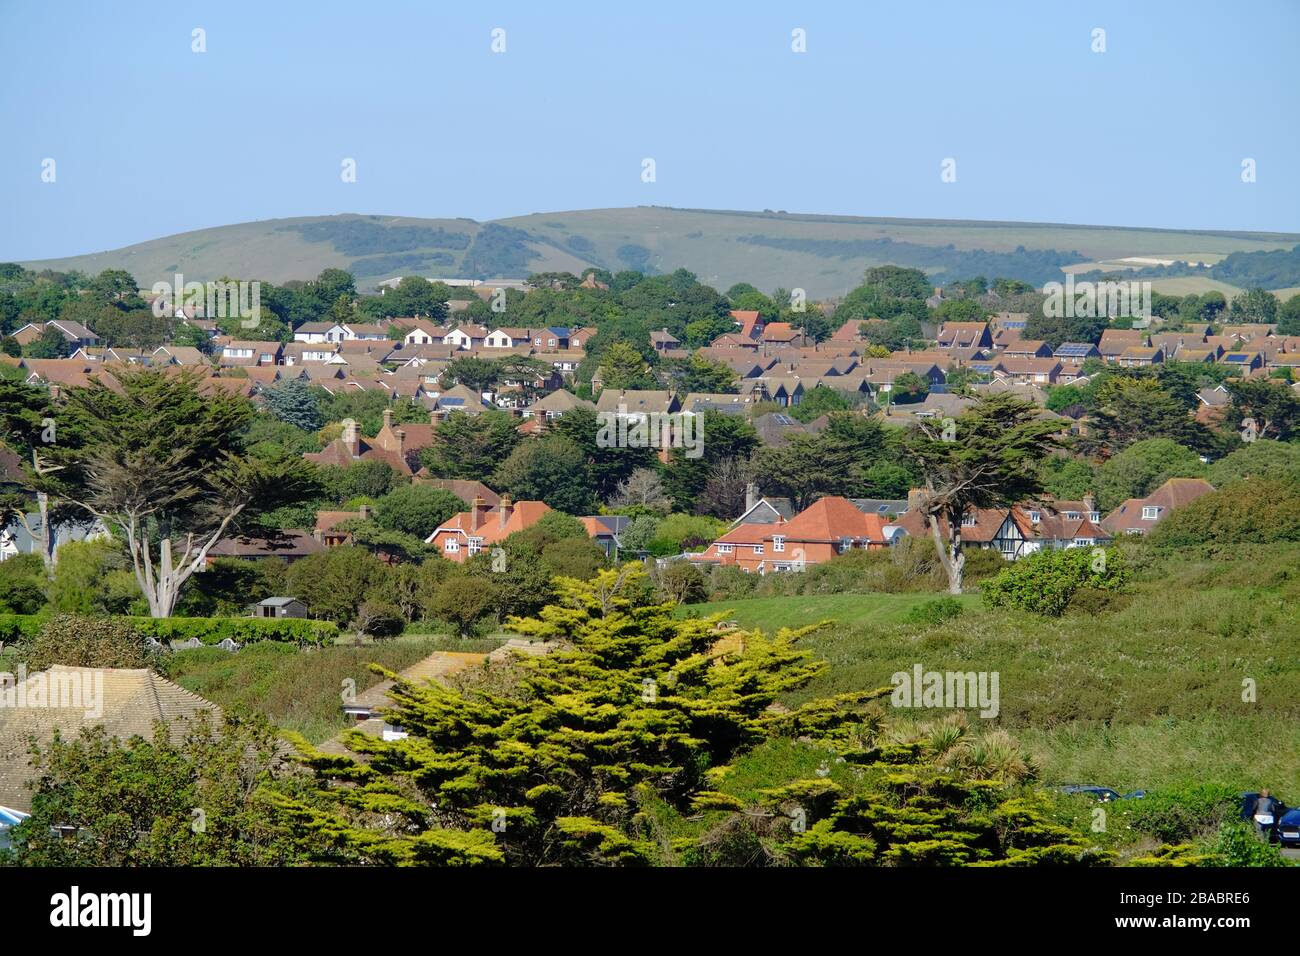 Housing stock in a small English town, Seaford, East Sussex, UK, nestled in the South Downs. Stock Photo